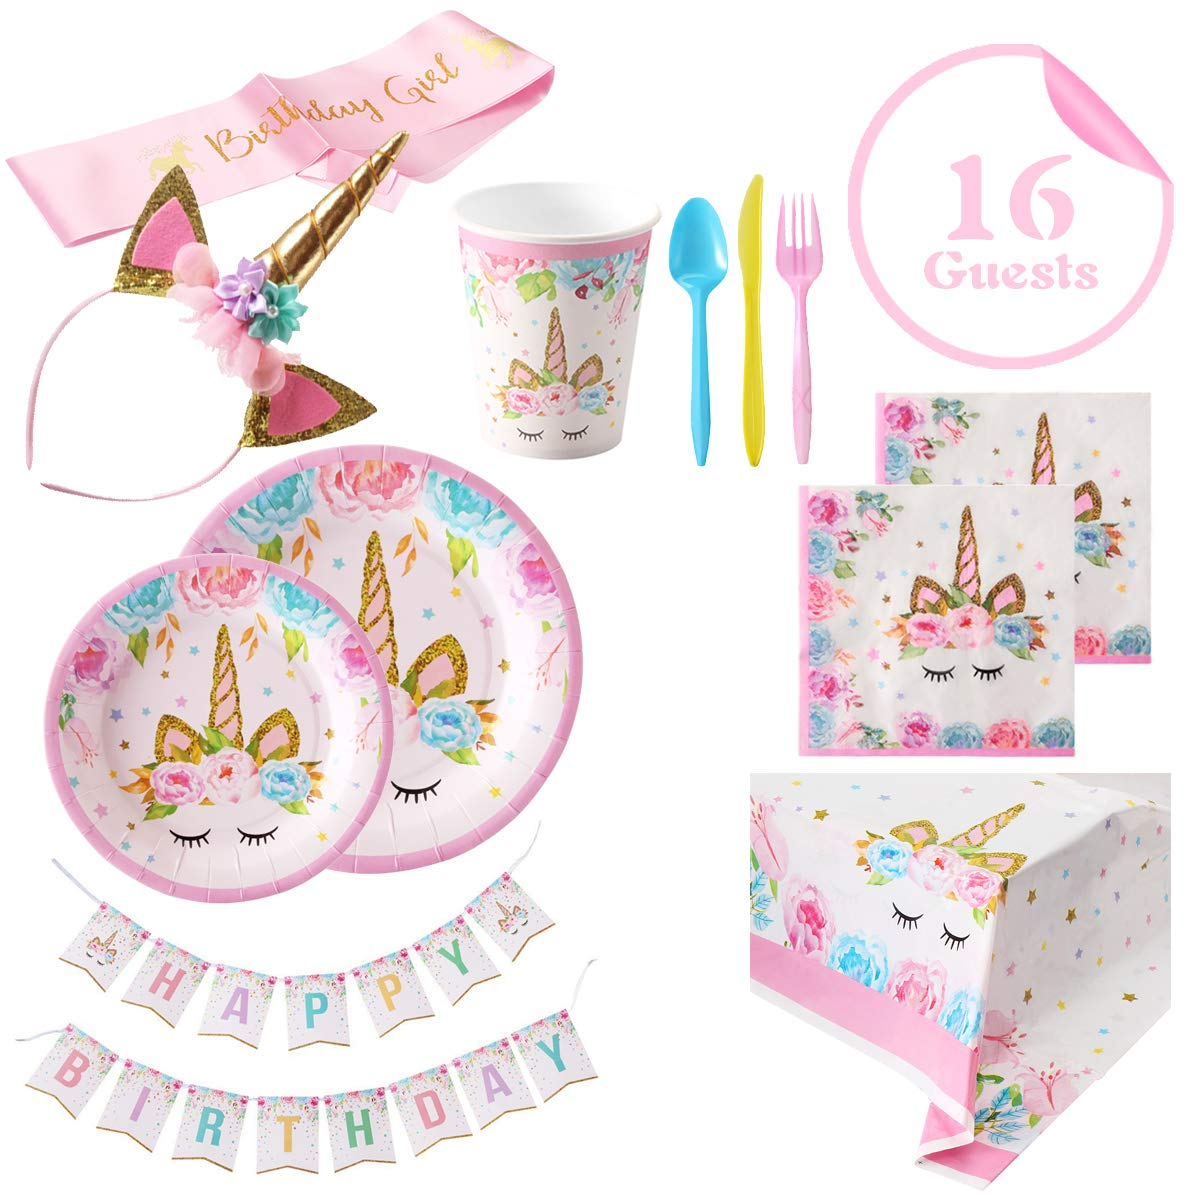 Unicorn Party Supplies Set - 2018 New Set of 16 Including Cake Plates, Cups, Napkins, Tableware, Table Cover, Birthday Banner, Unicorn Headband and Pink Satin Sash, Magical Fantasy Birthday Decoration for Girls